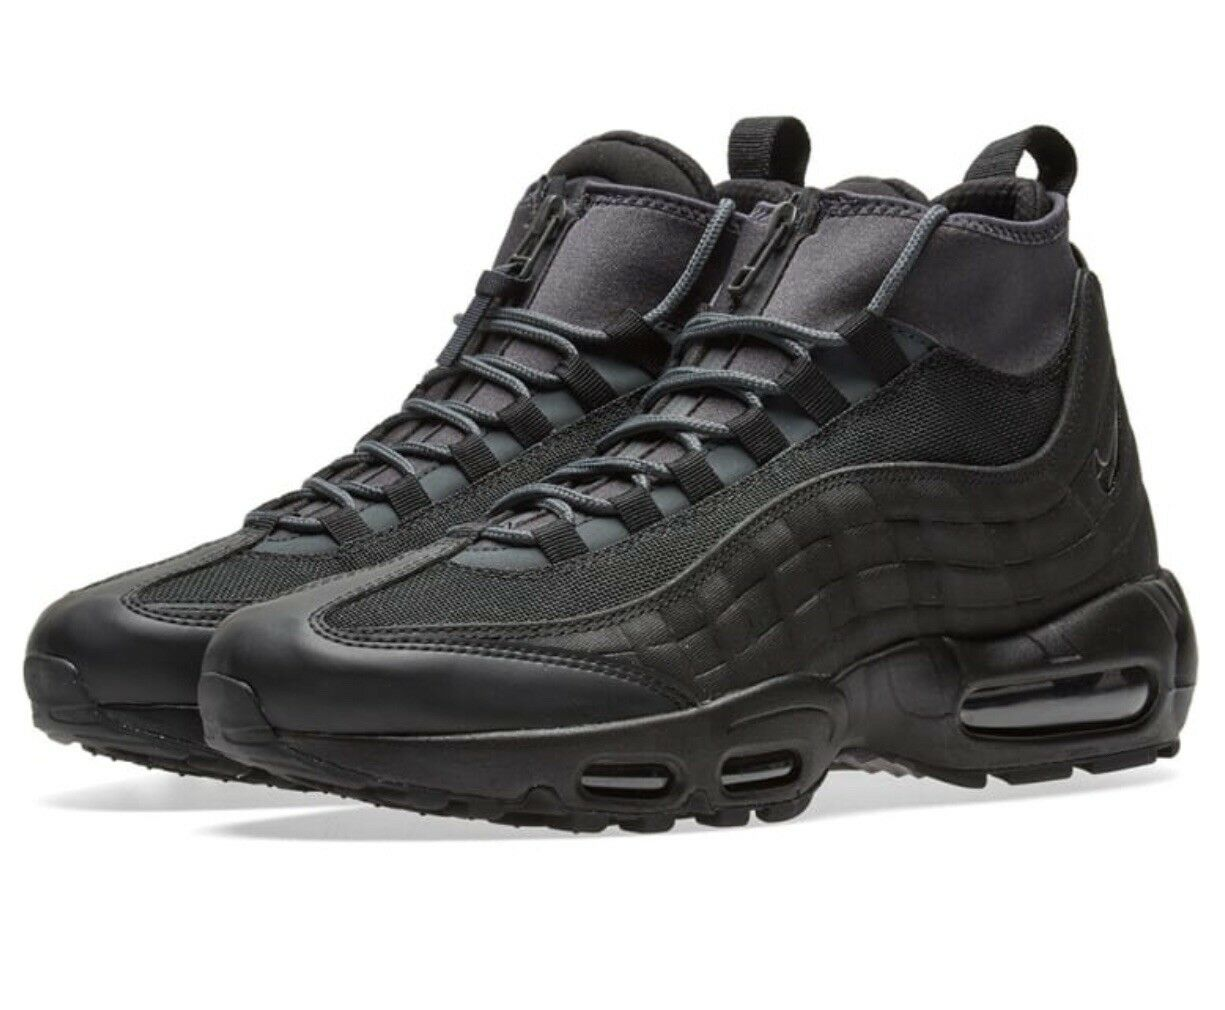 online store e214b 60e38 Nike Air Max Max Max 95 Sneakerboot NOIR Baskets Homme Taille (806809 001)  64f420